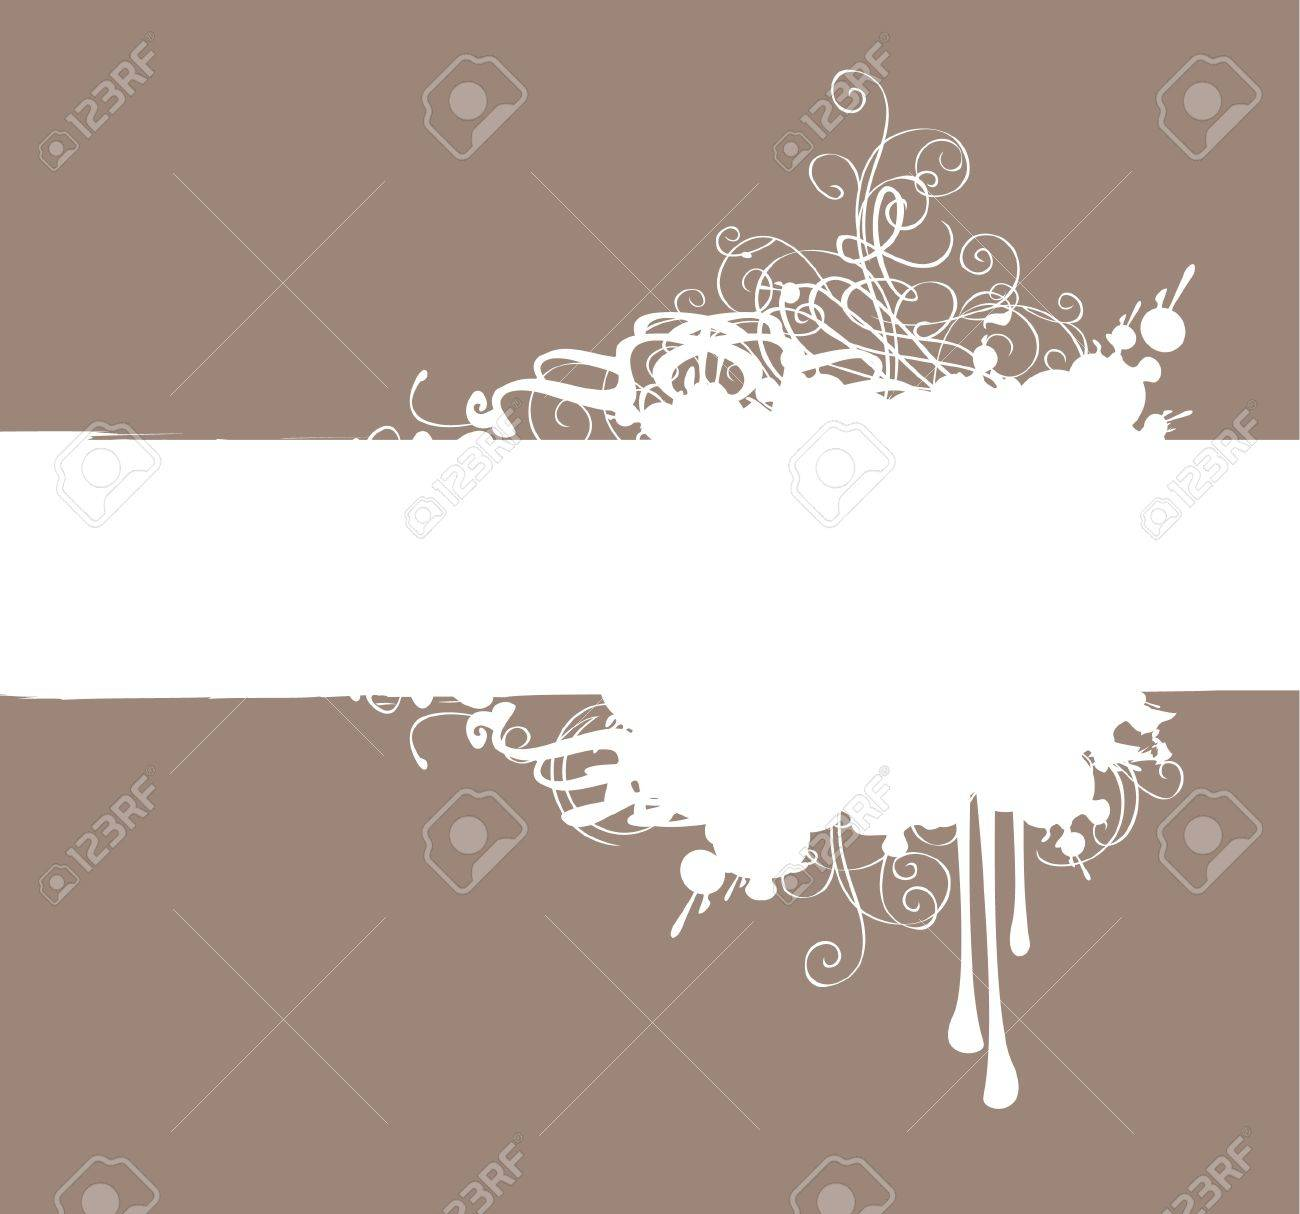 abstract background with spray and drops Stock Vector - 12803184